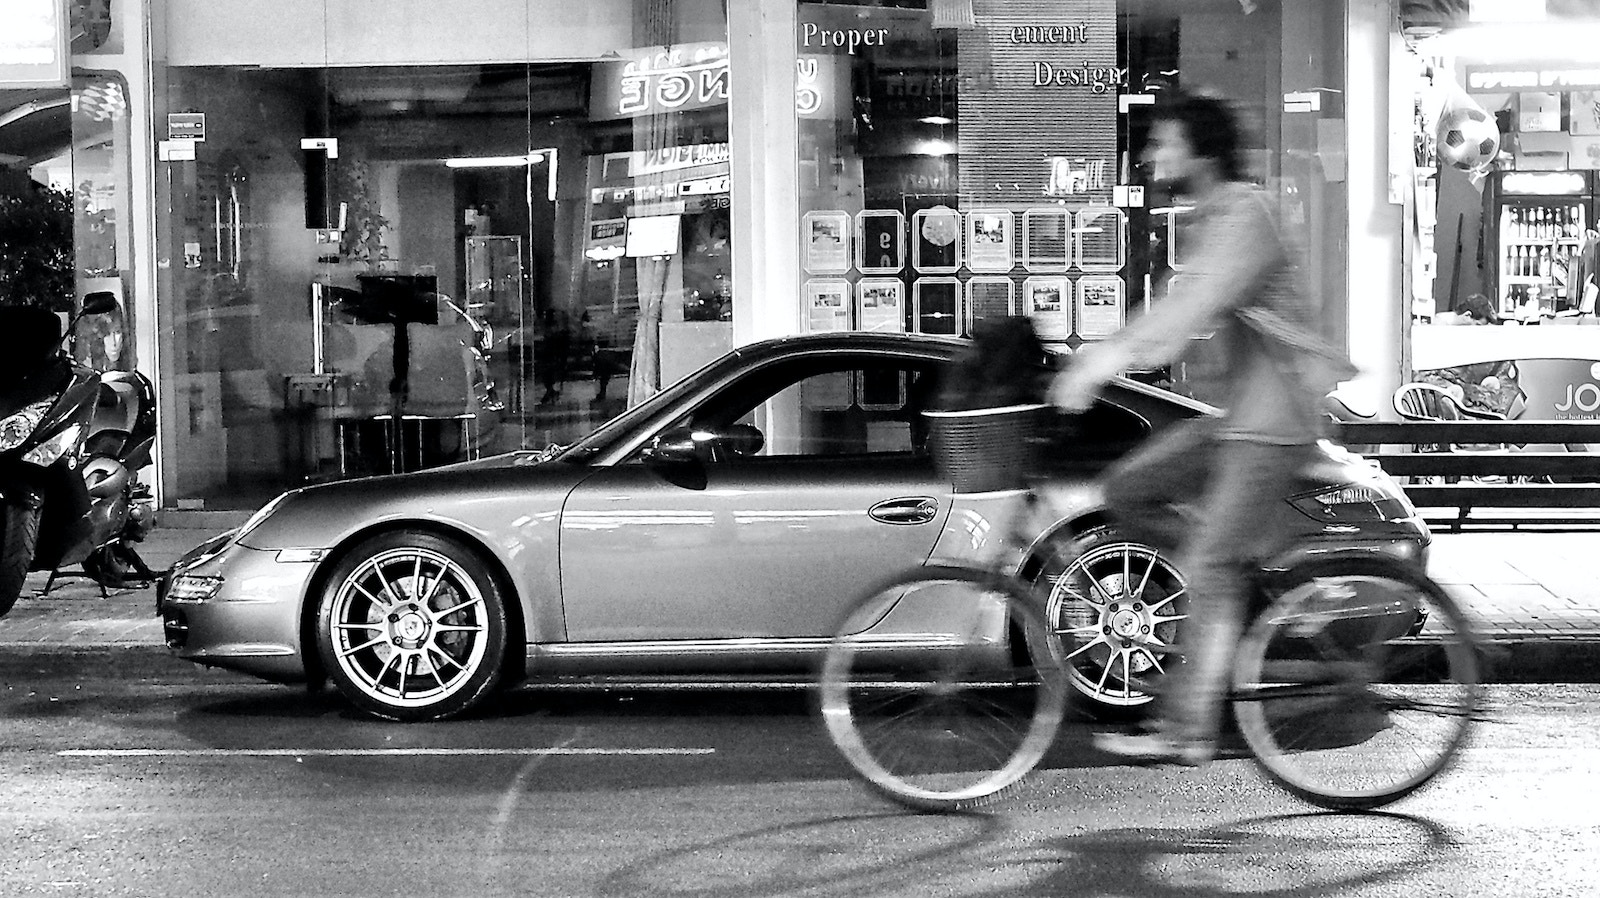 Do cyclists make better drivers?